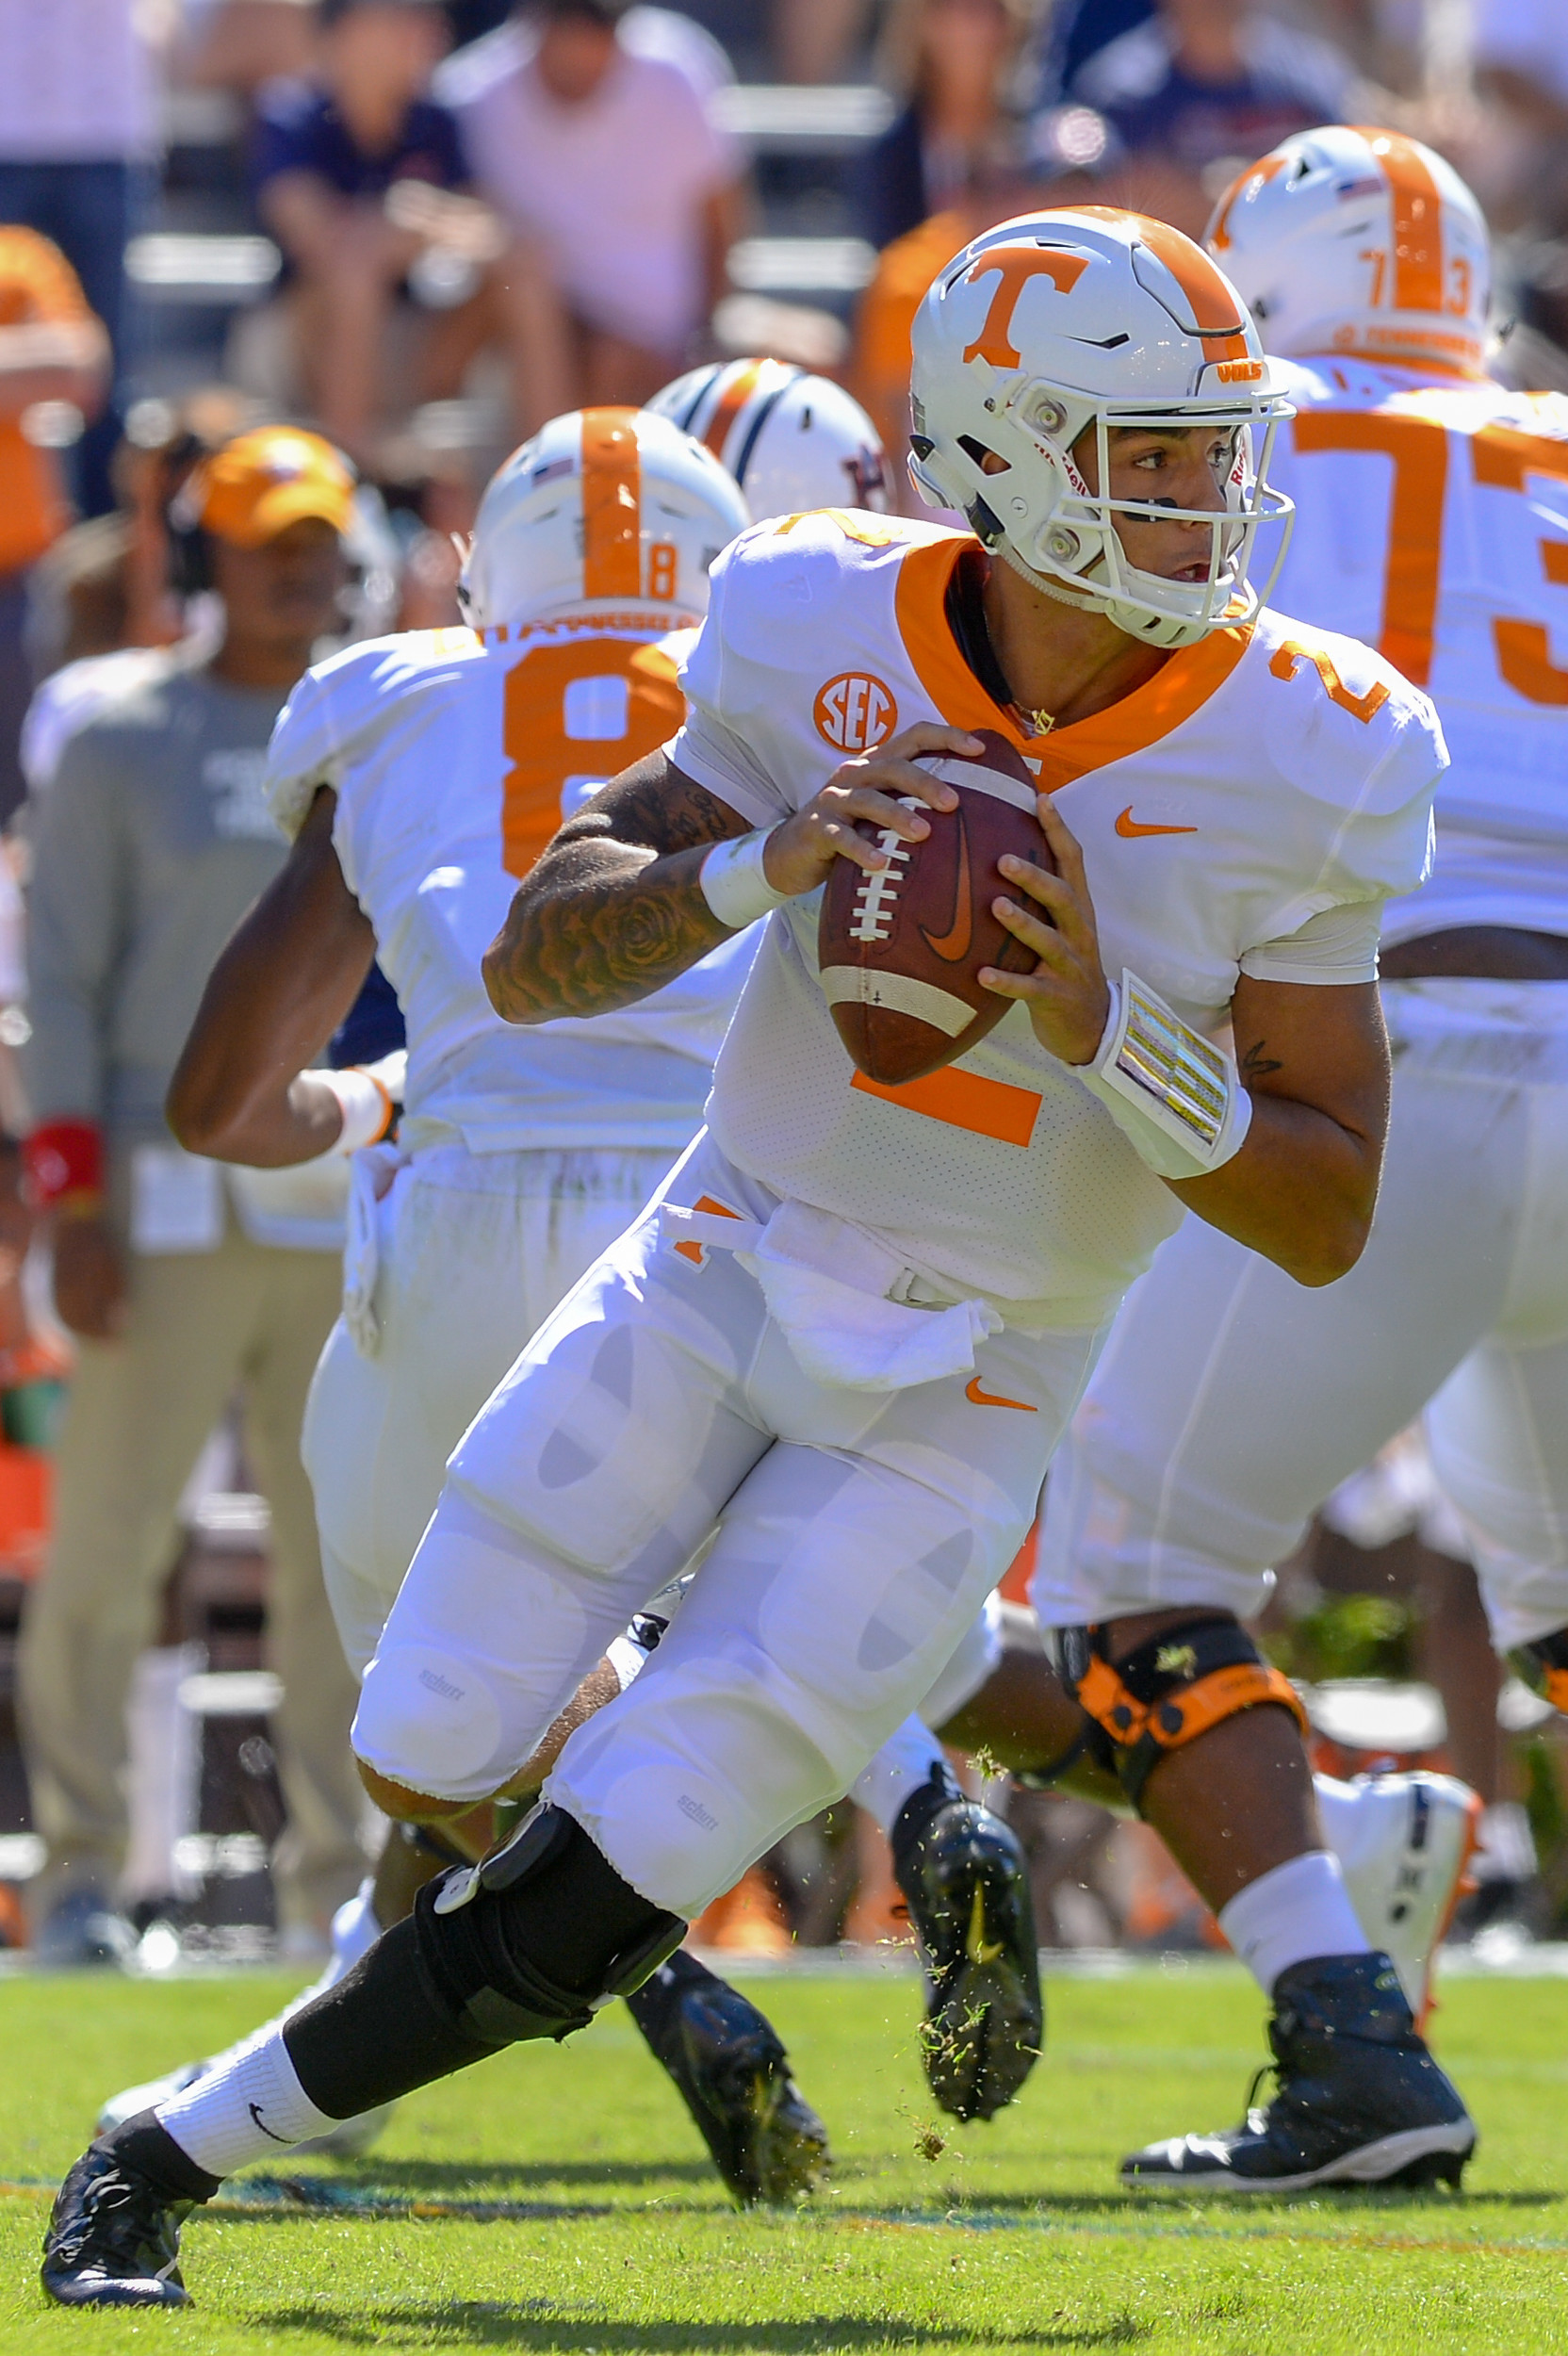 Tennessee Volunteers quarterback Jarrett Guarantano (2) rooms out during the first half of Saturday's game, at Jordan-Hare Stadium in Auburn, AL. Daily Mountain Eagle -  Jeff Johnsey